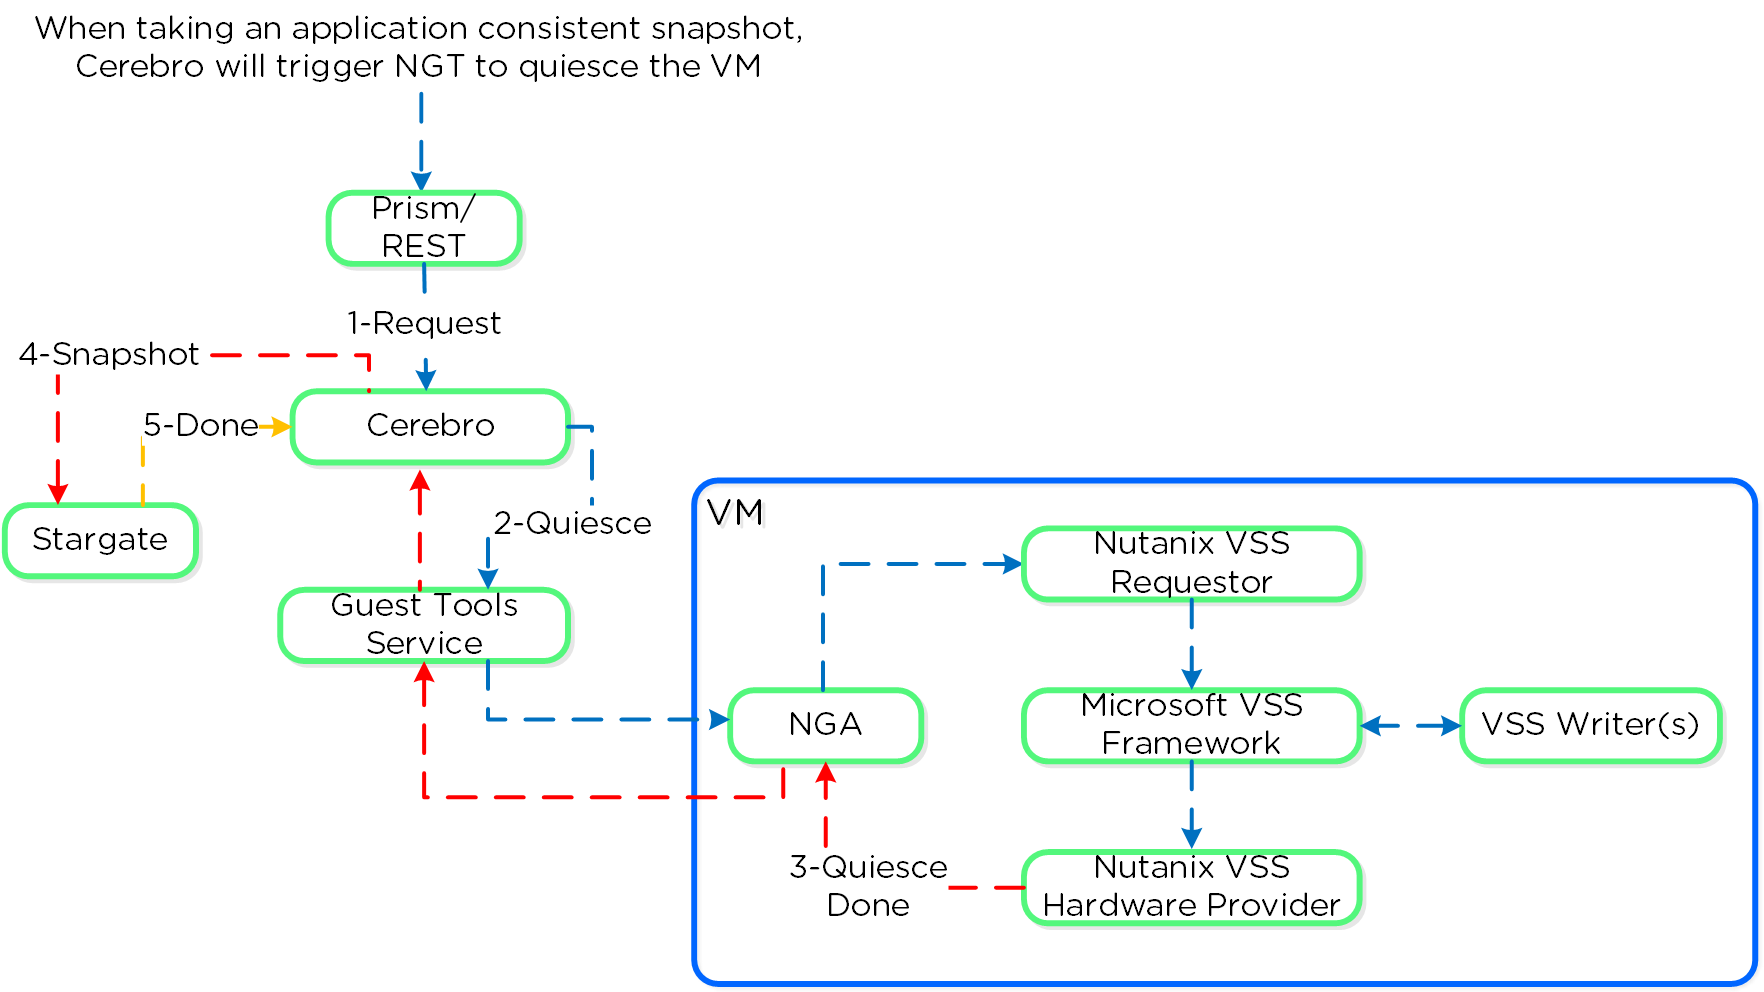 Nutanix VSS - Windows Architecture